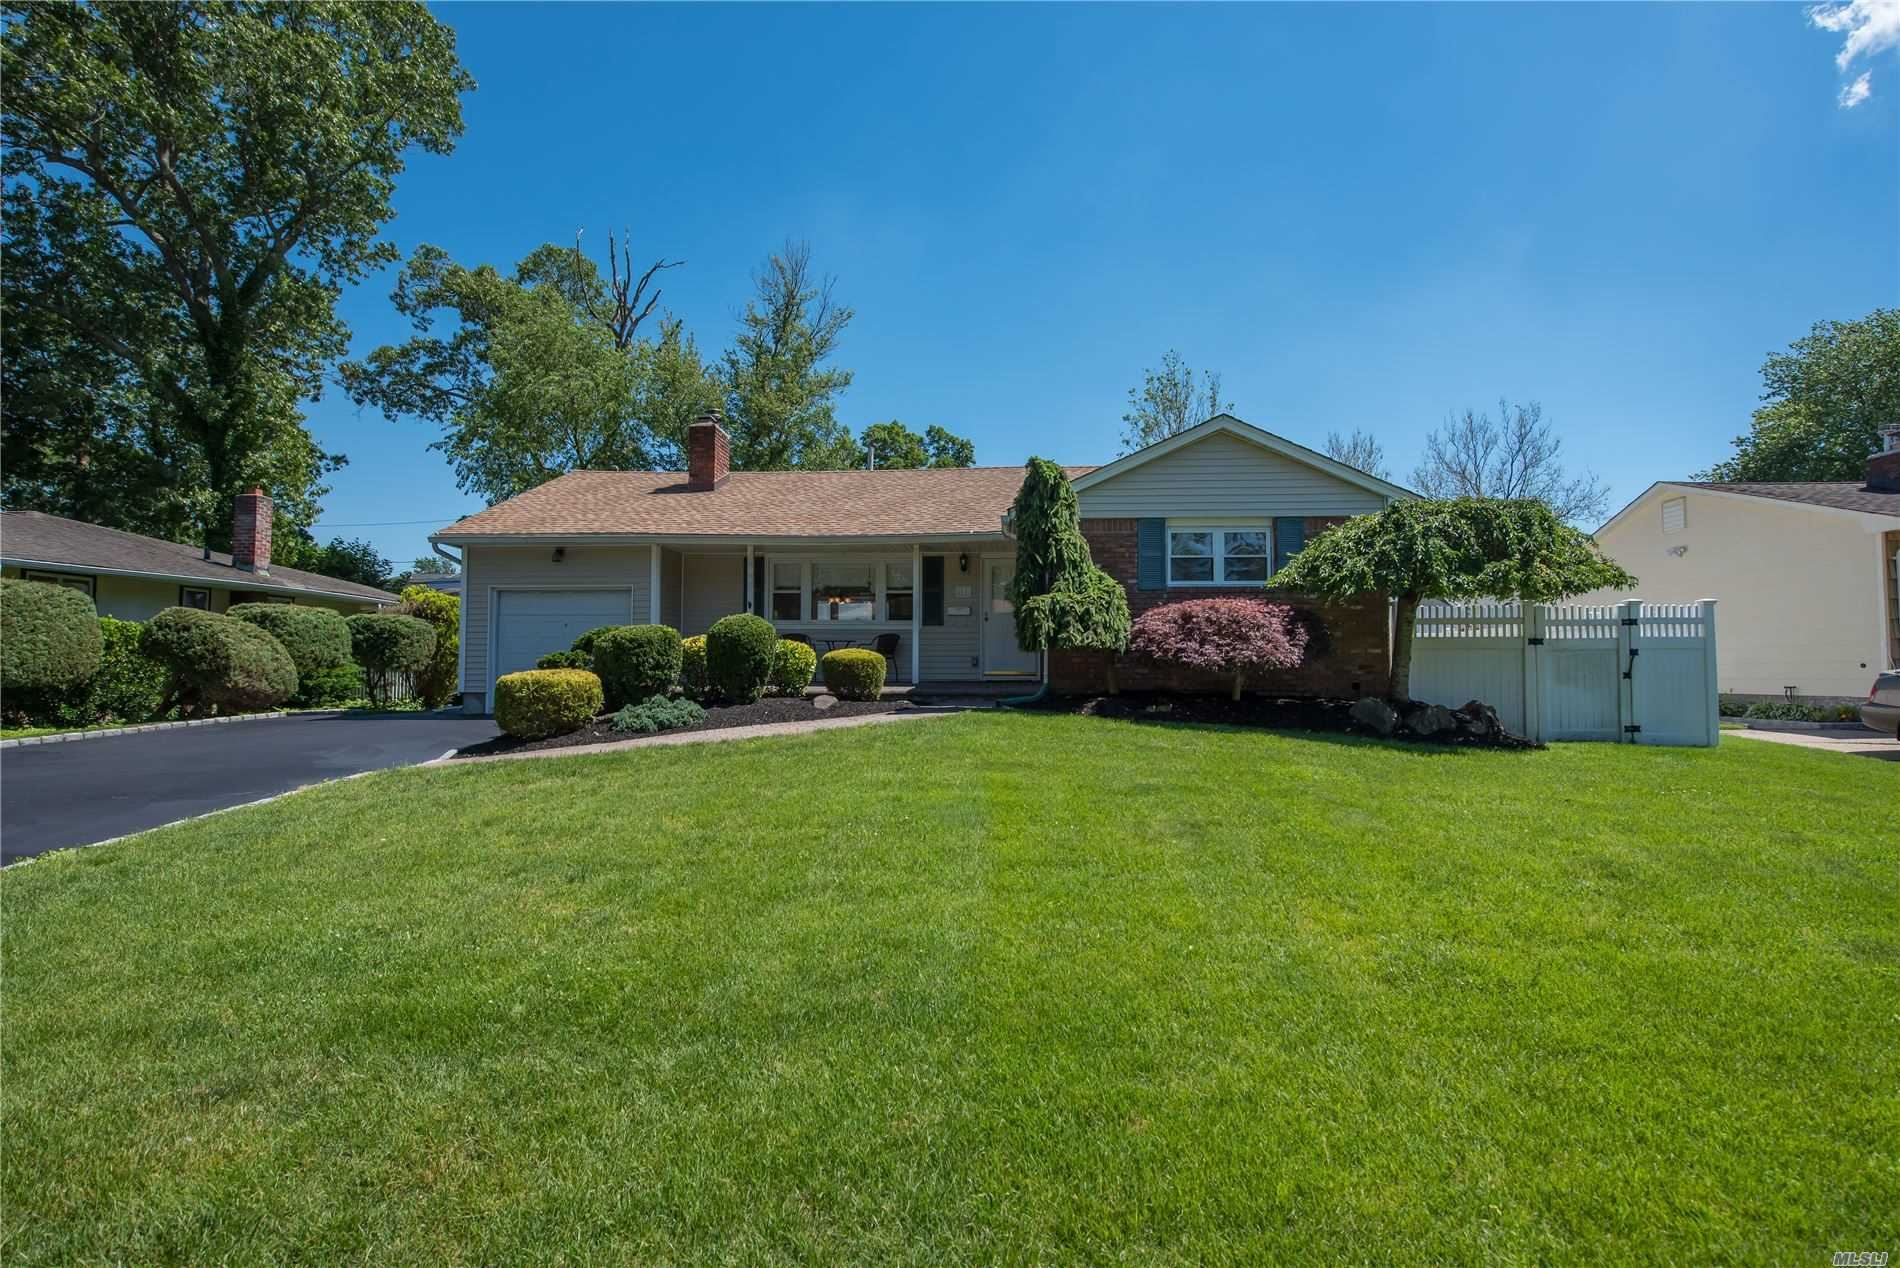 37 Tanglewood Drive, Smithtown, NY 11787 - MLS#: 3222197